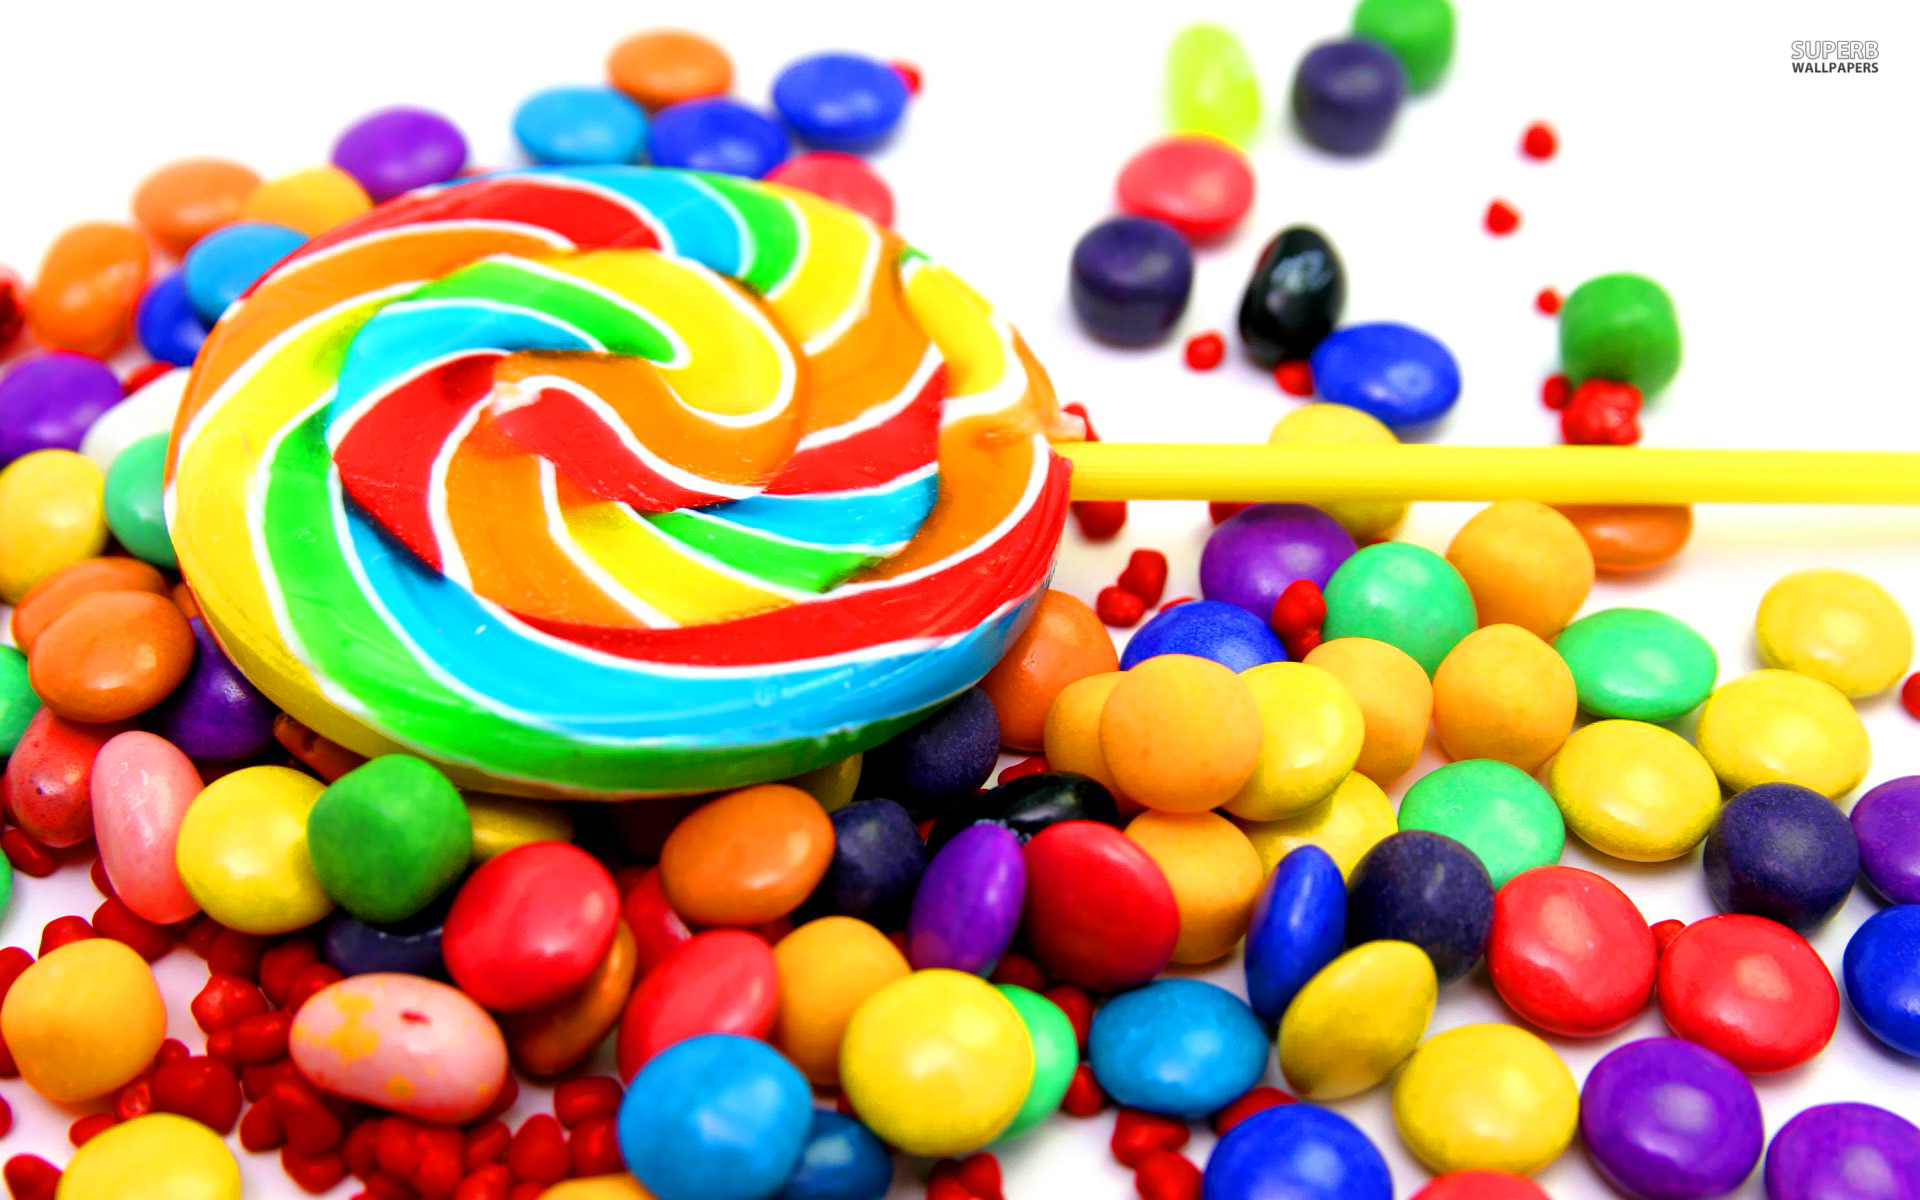 Colorful candy wallpaper 1920x1200